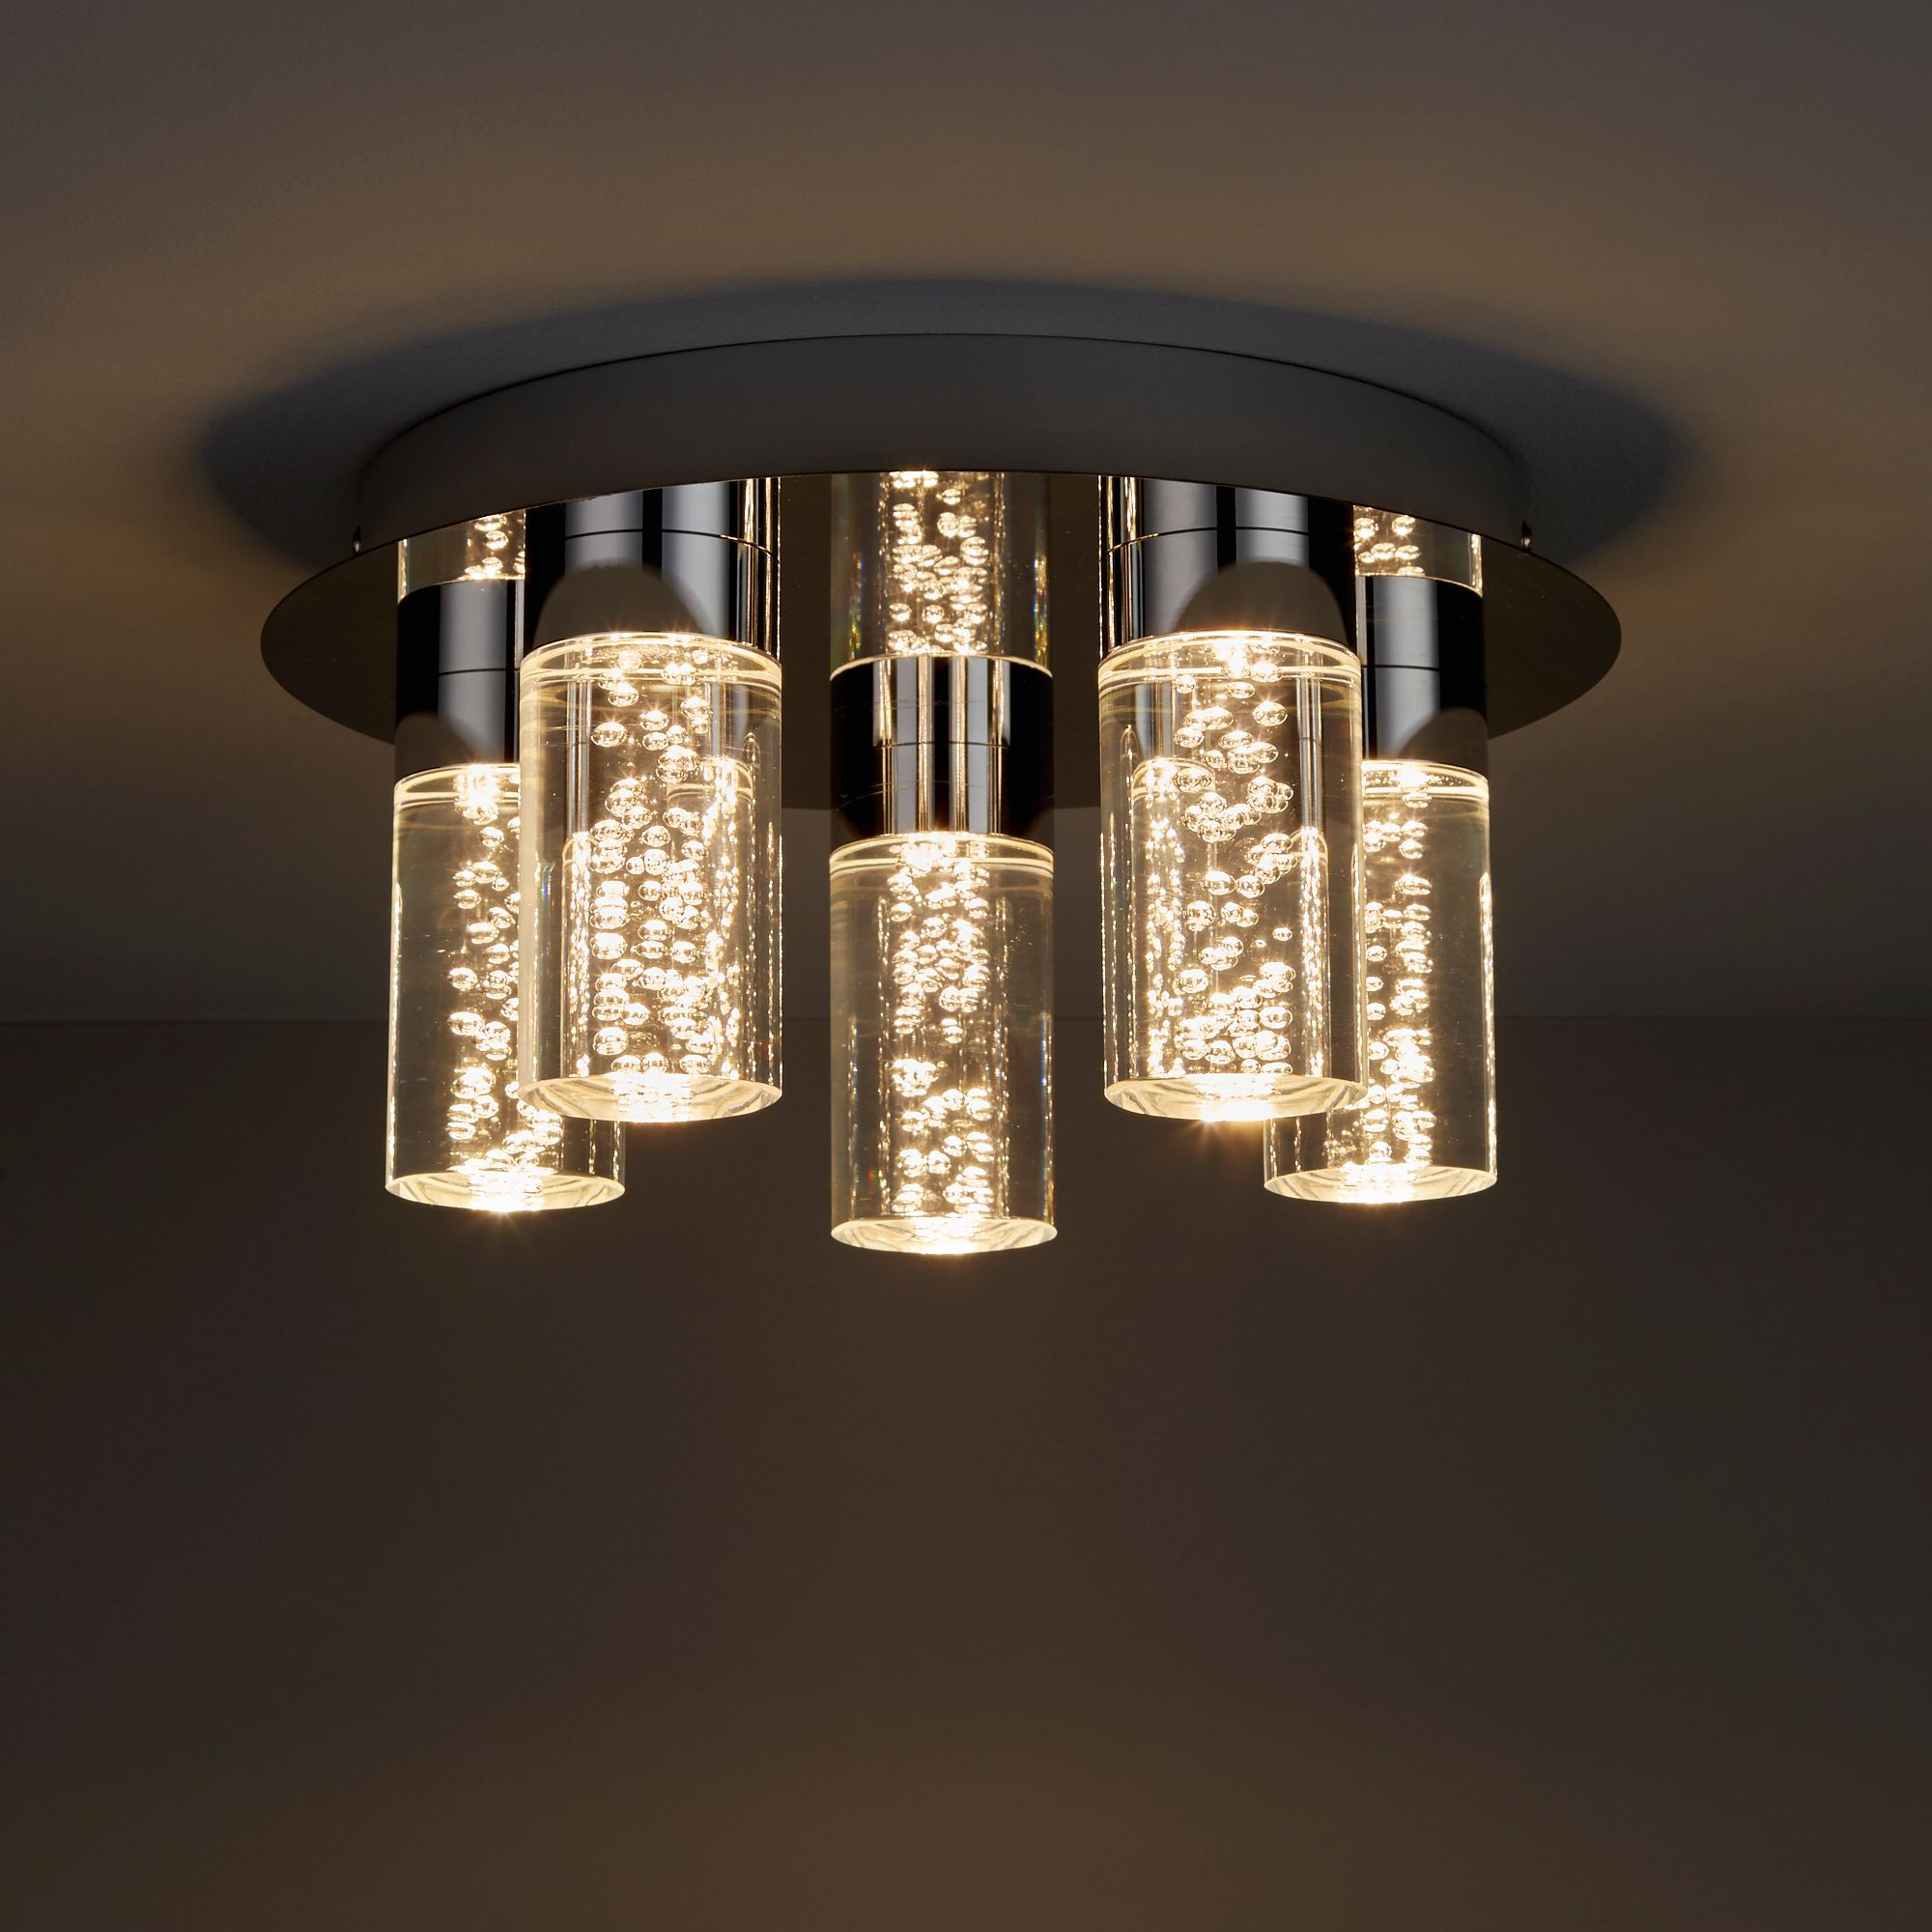 Bathroom Ceiling Light Fixtures Chrome